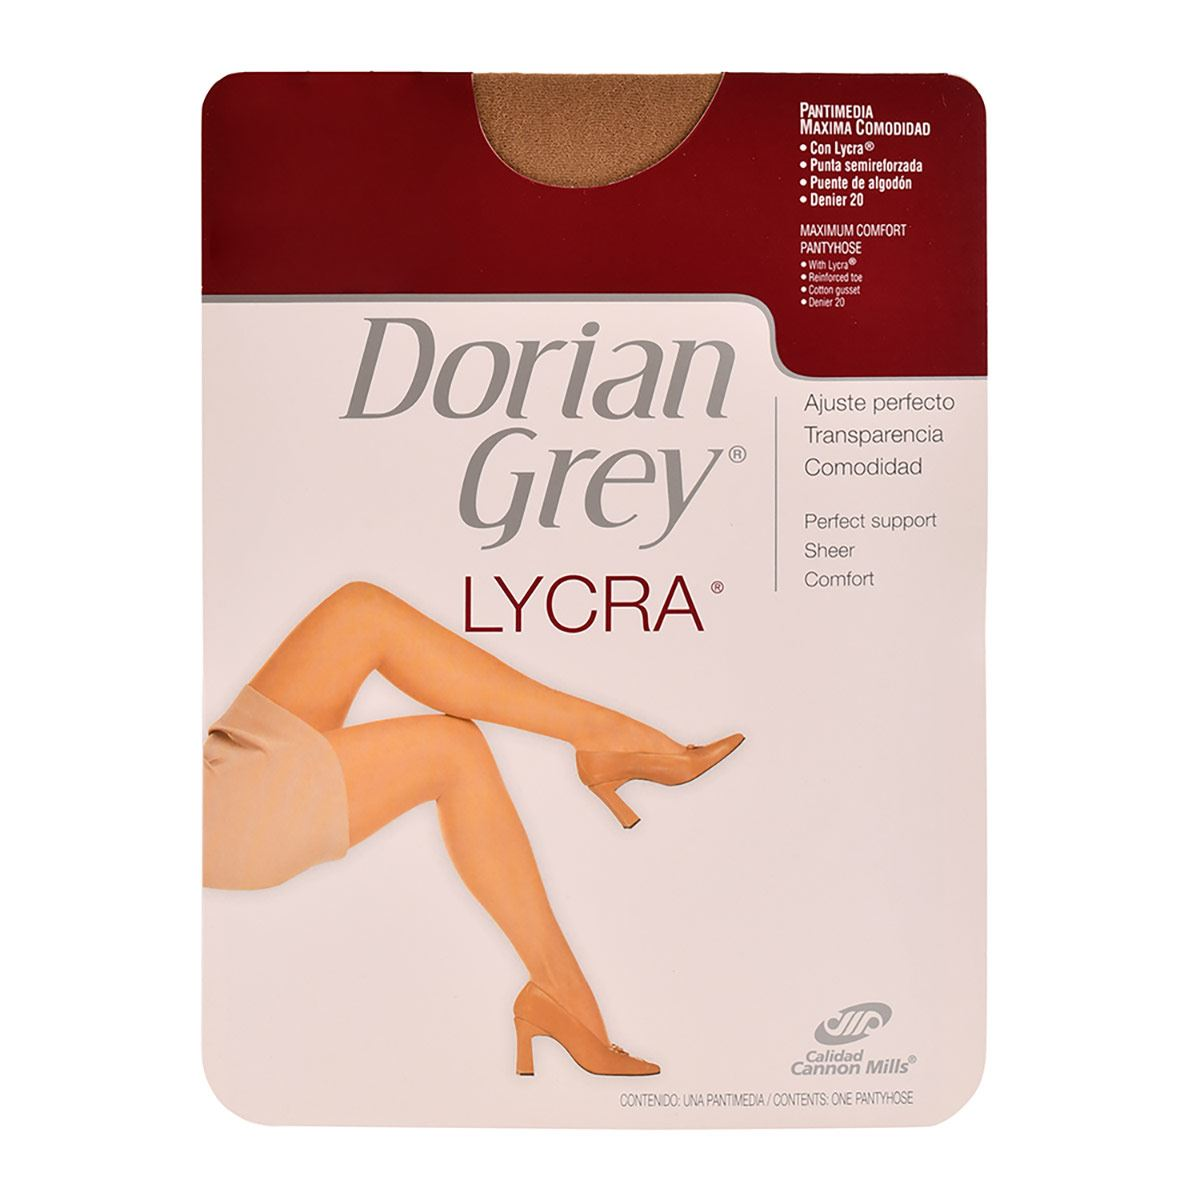 Pantimedia Dorian Grey  Likra T. Chica Color Natural